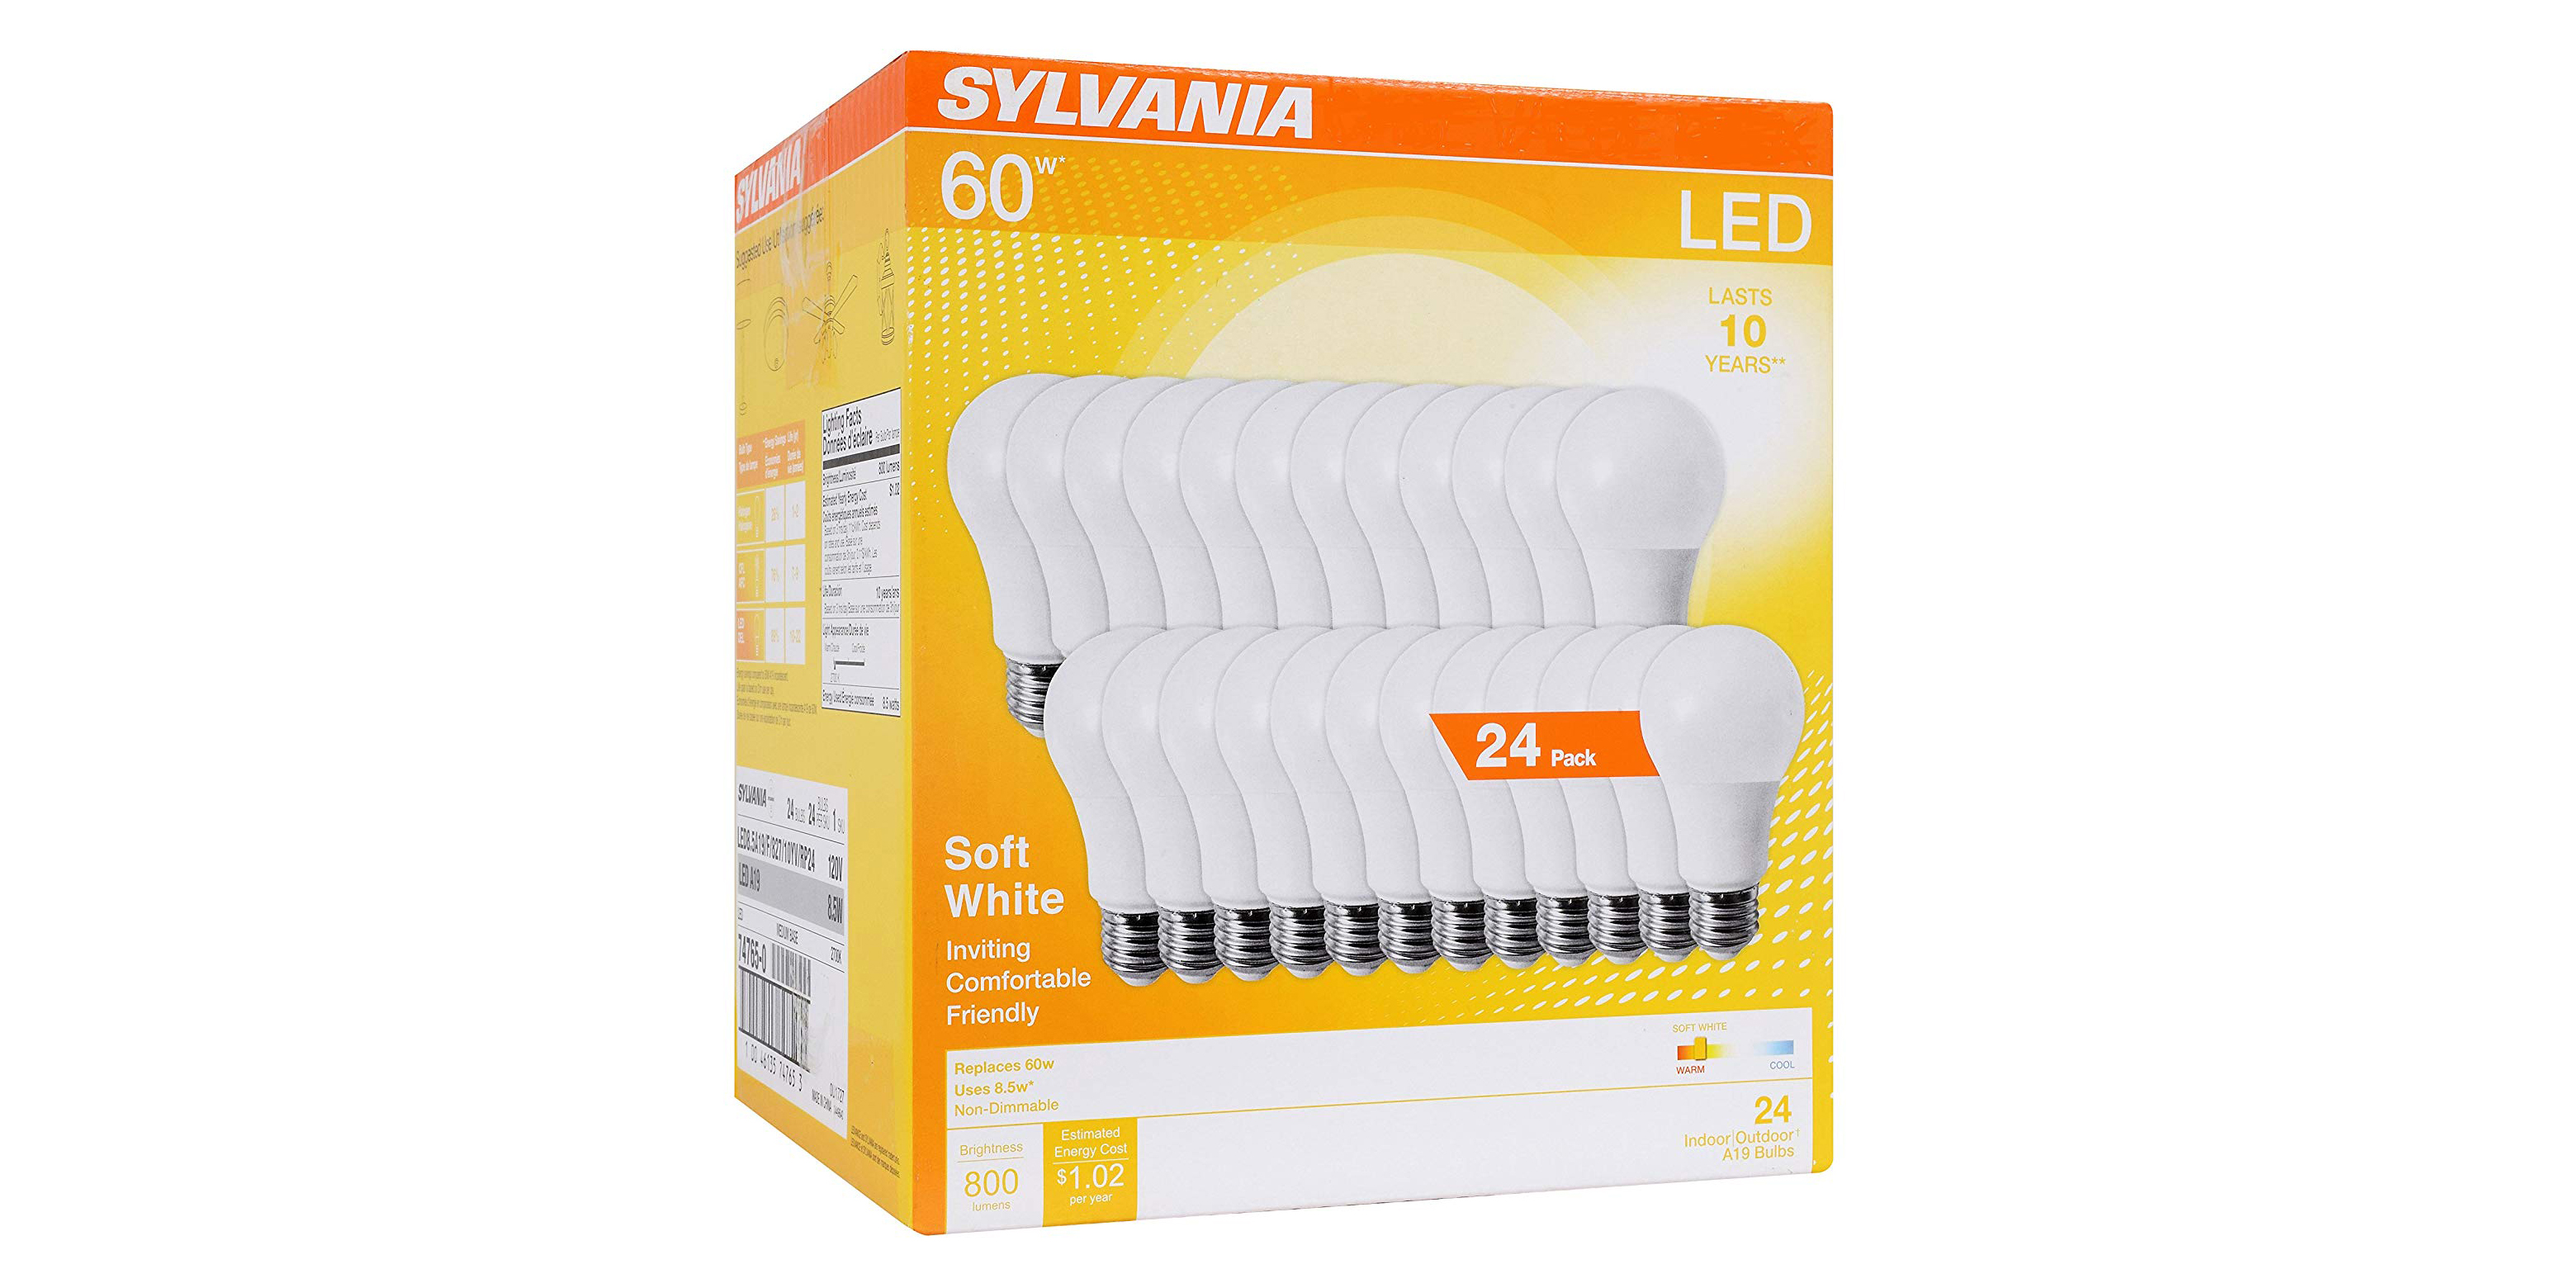 Pick up a 24-pack of Sylvania LED Light Bulbs for just $0.95 per unit